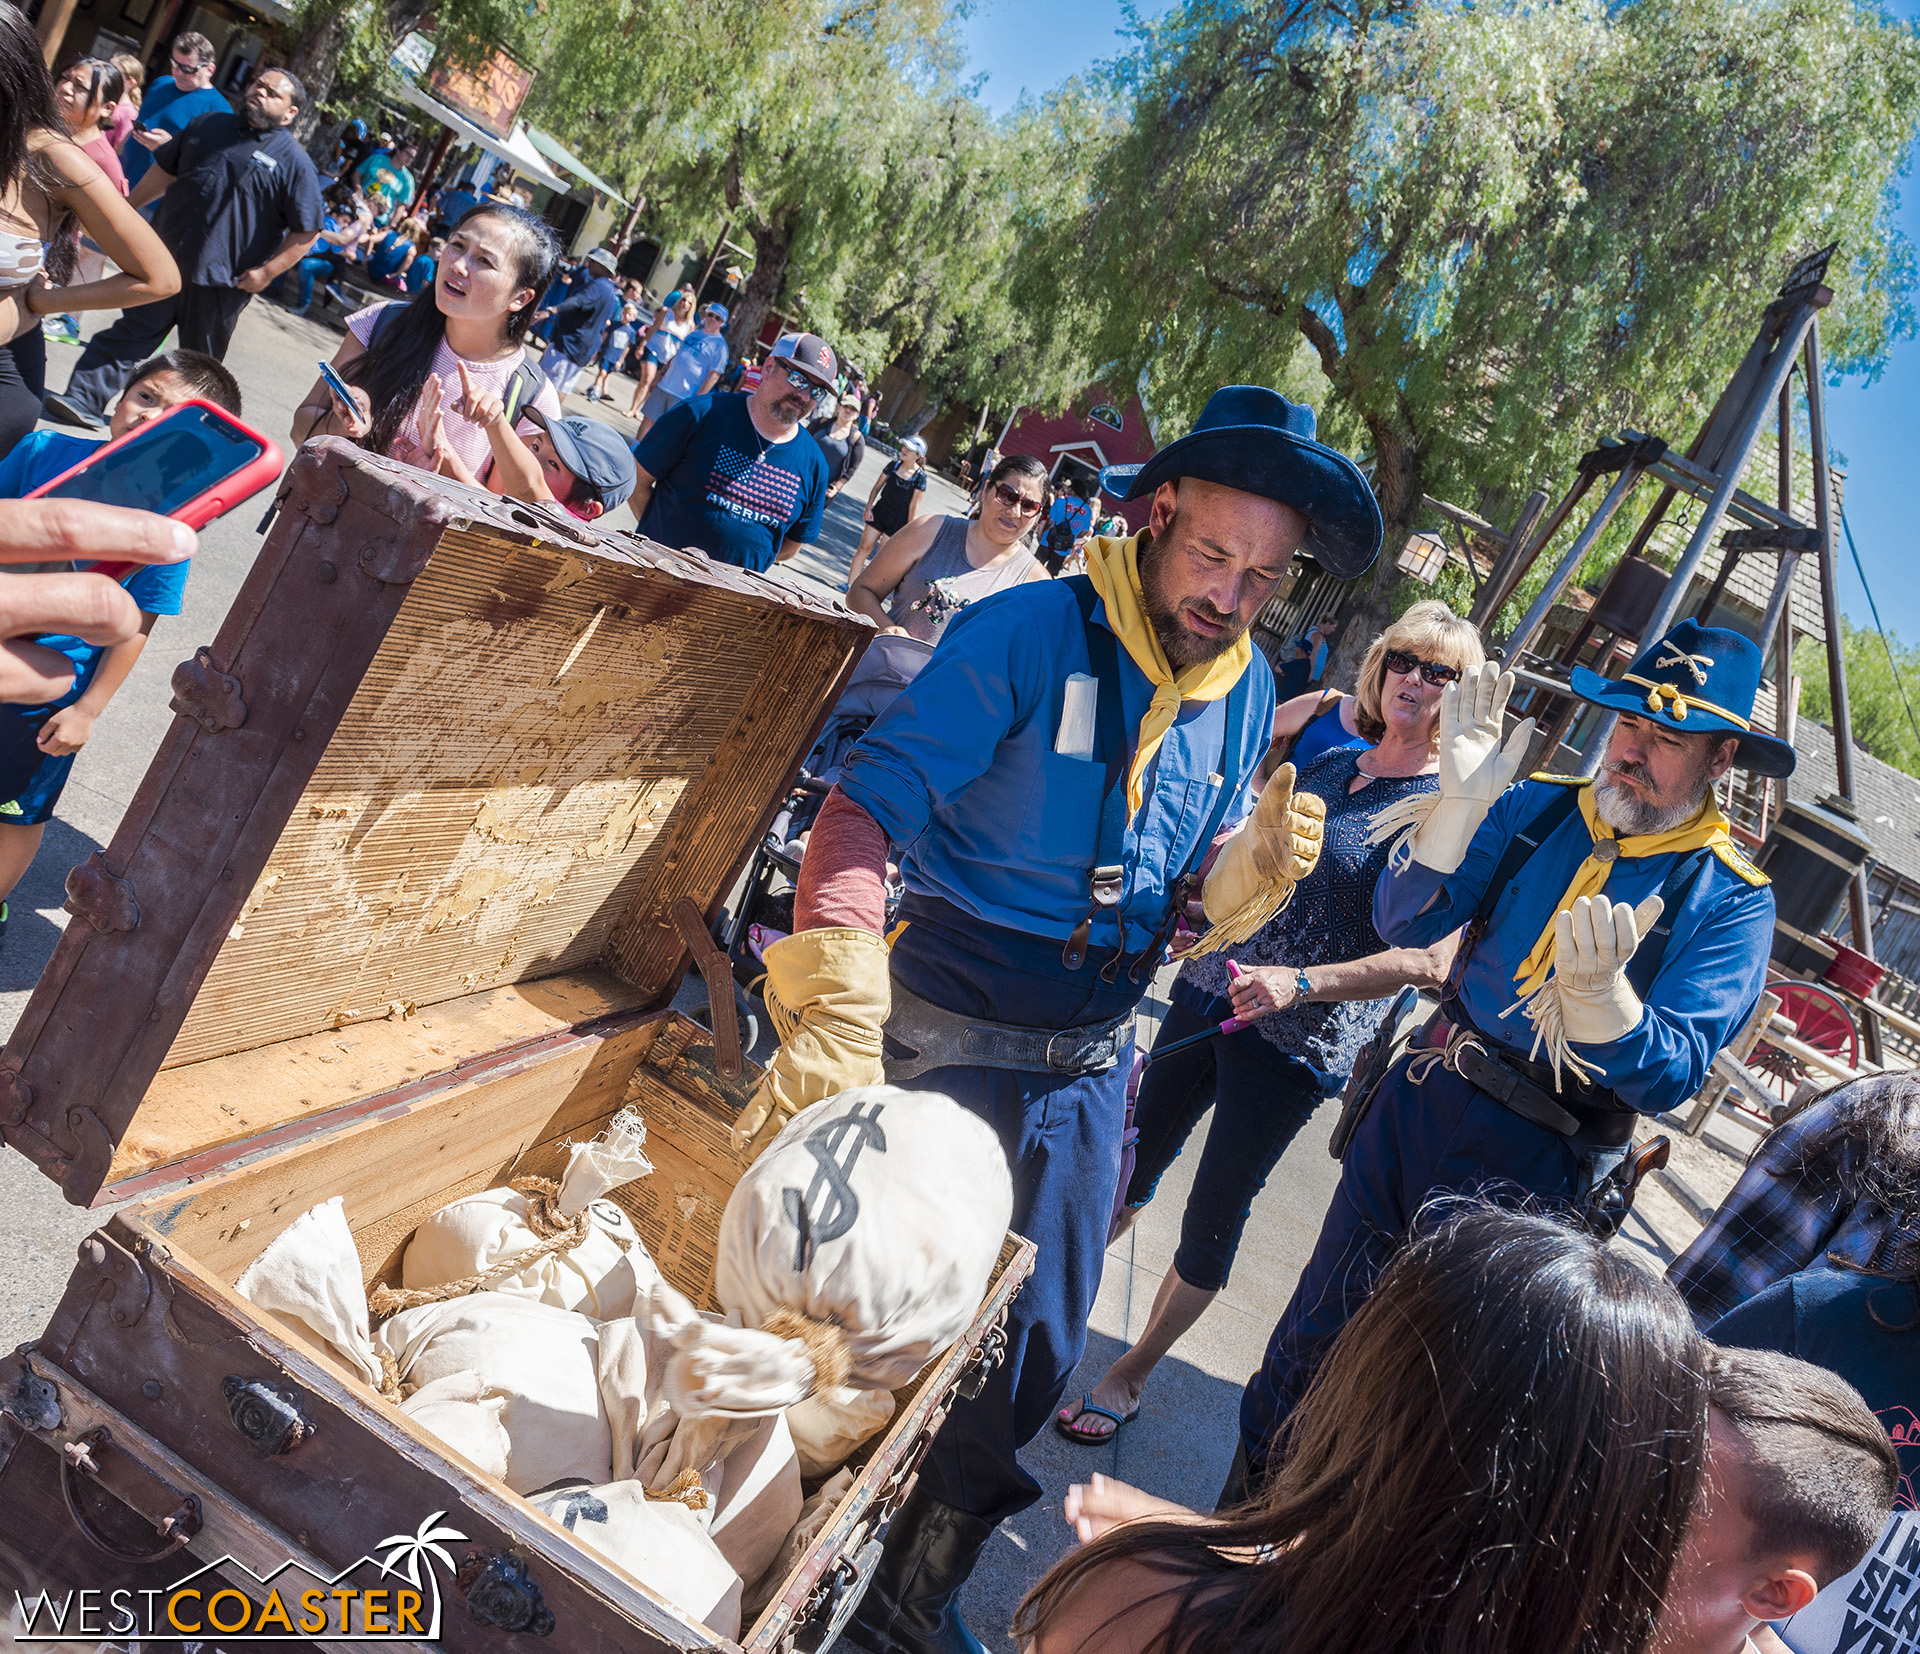 Hudson and Brady propose that the only way to protect Calico is to have everyone in town place their valuables in this U.S. Cavalry chest, which would then be guarded 24 hours a day by the Cavalry members.